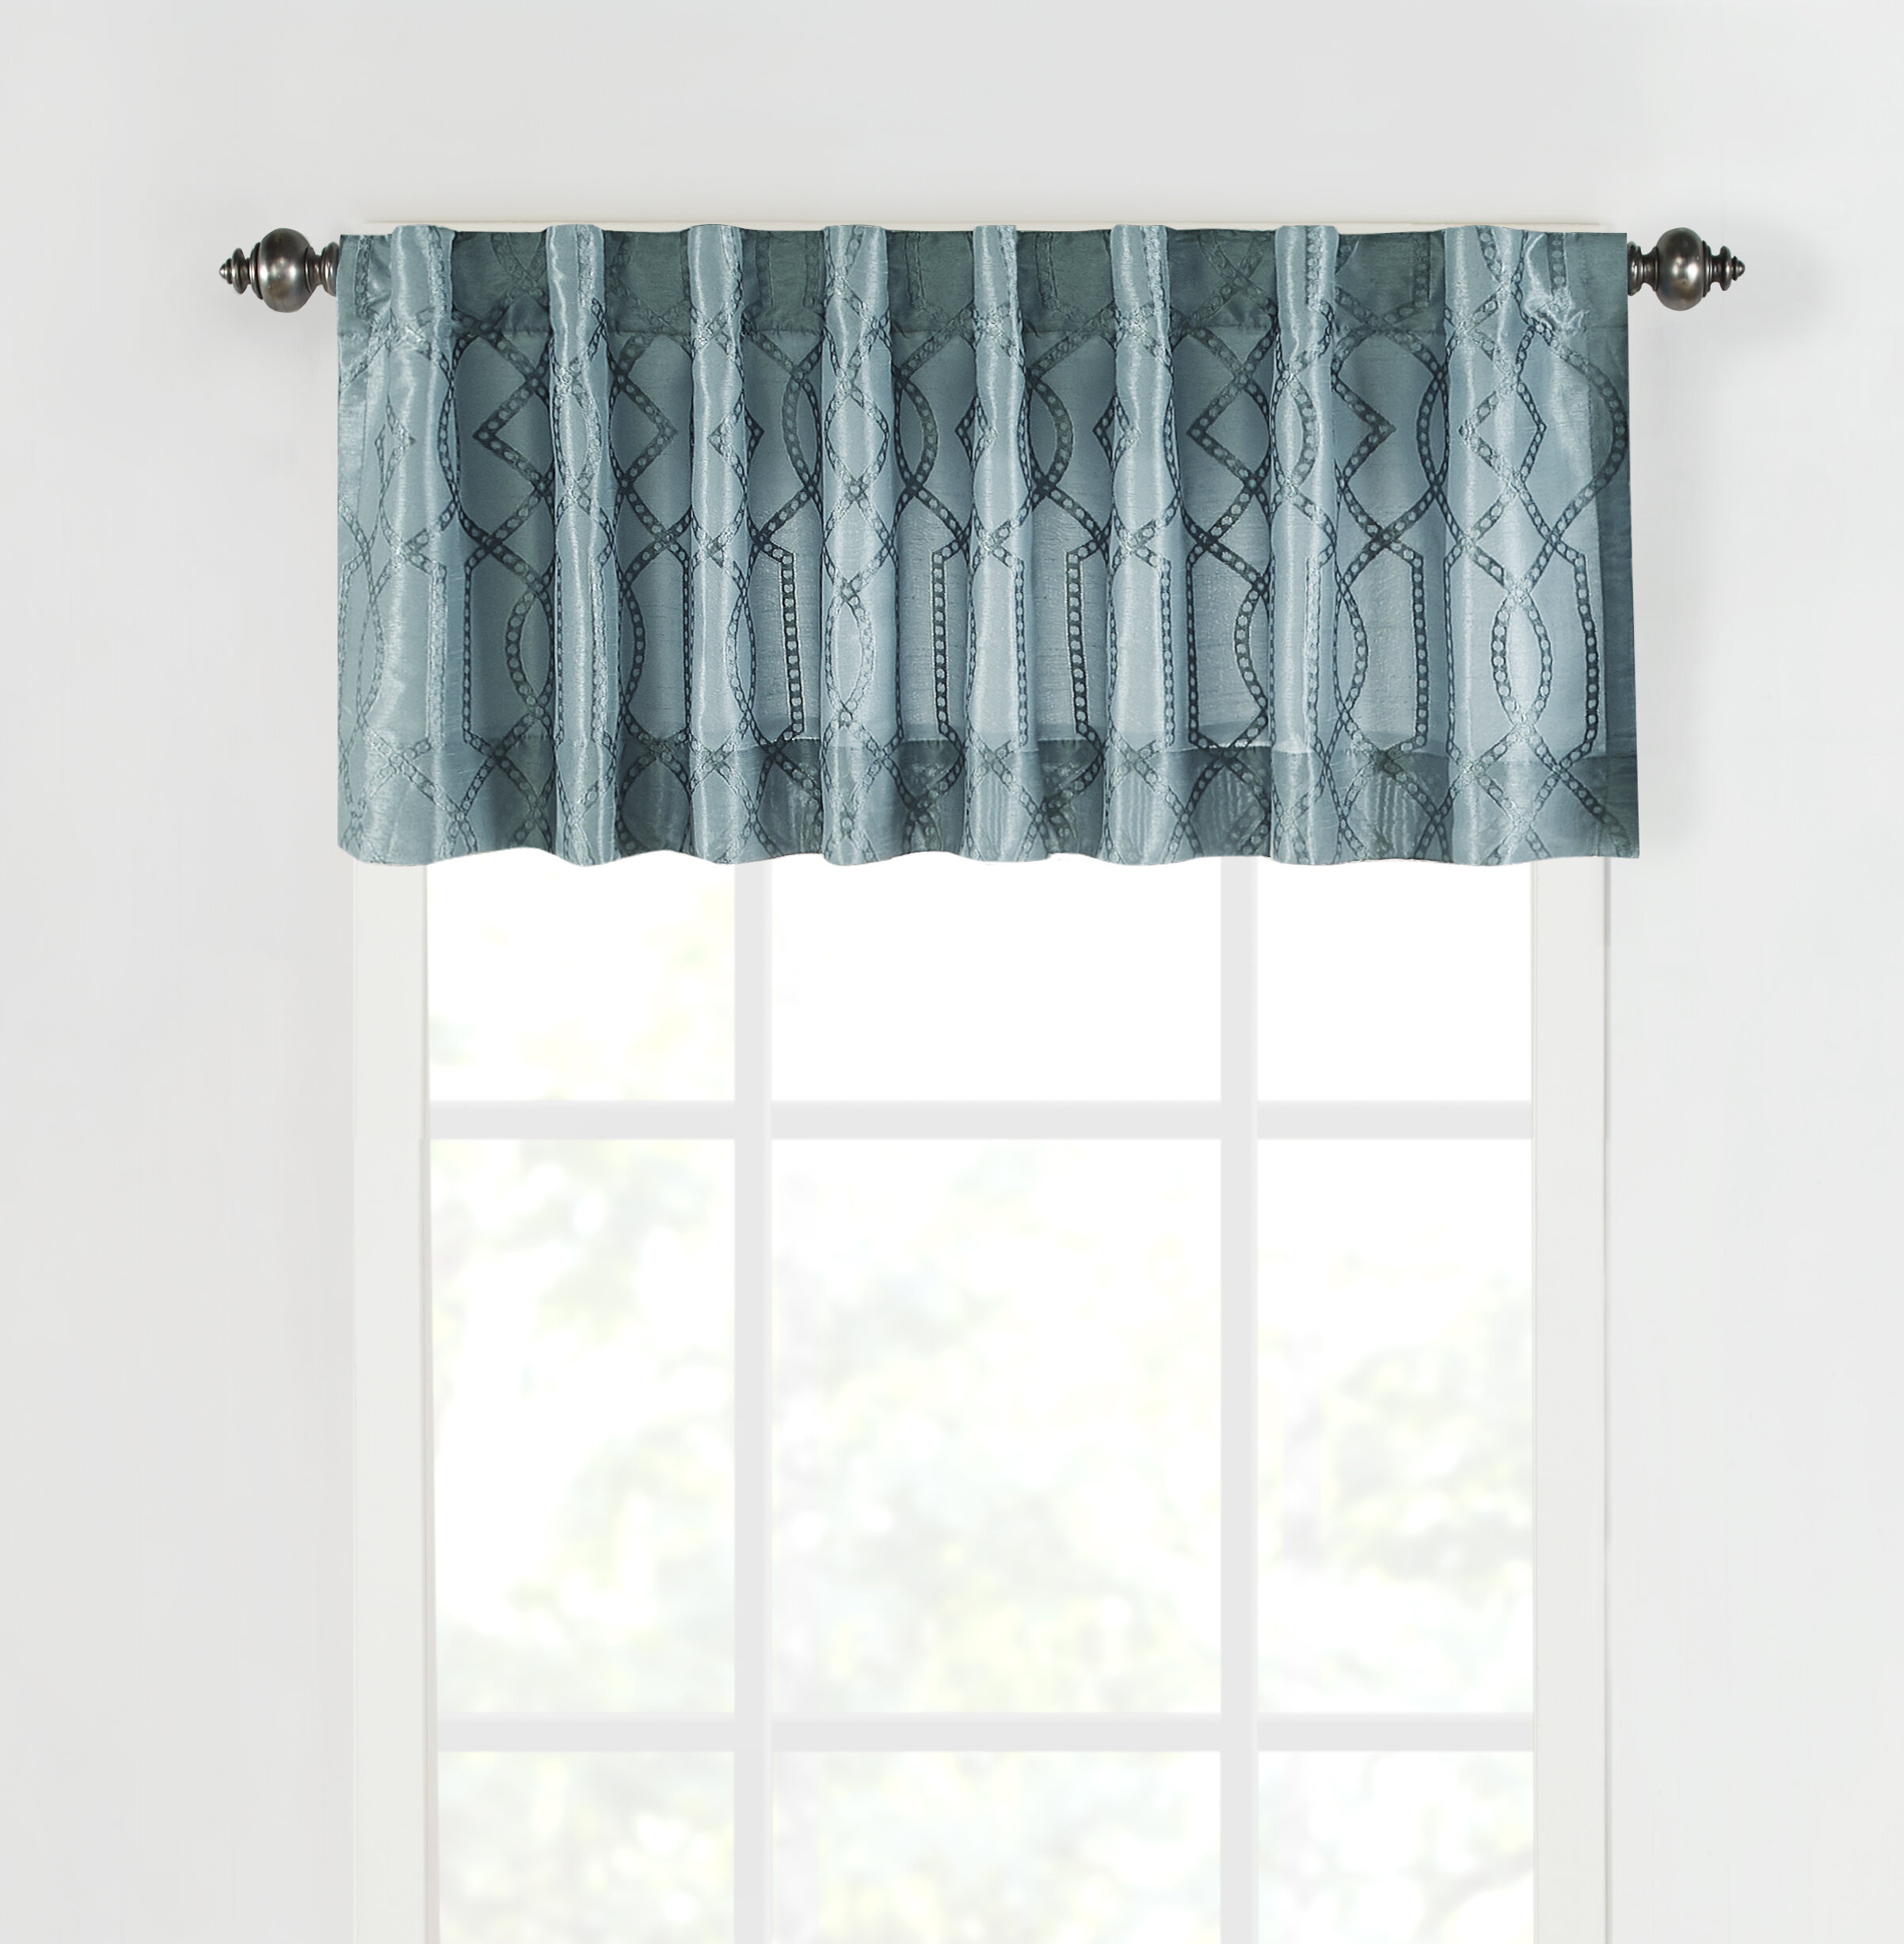 """Sure Fit Adalina Pocket Rod 54"""" W Window Valance For Microfiber 3 Piece Kitchen Curtain Valance And Tiers Sets (View 17 of 20)"""